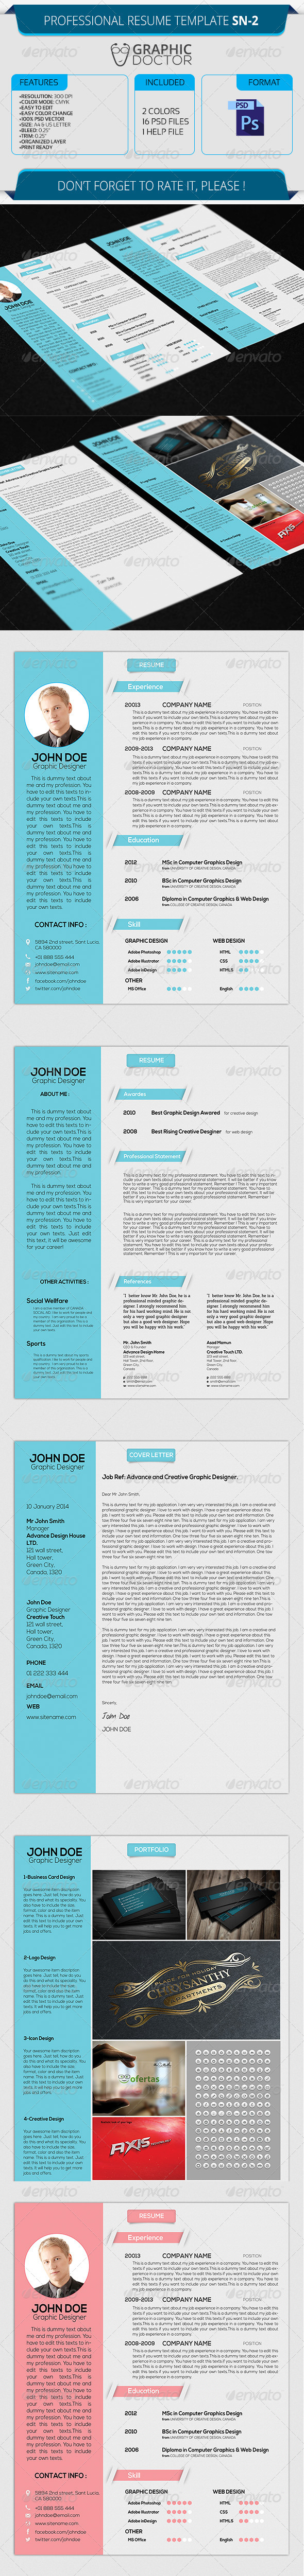 Professional Resume Template SN-2